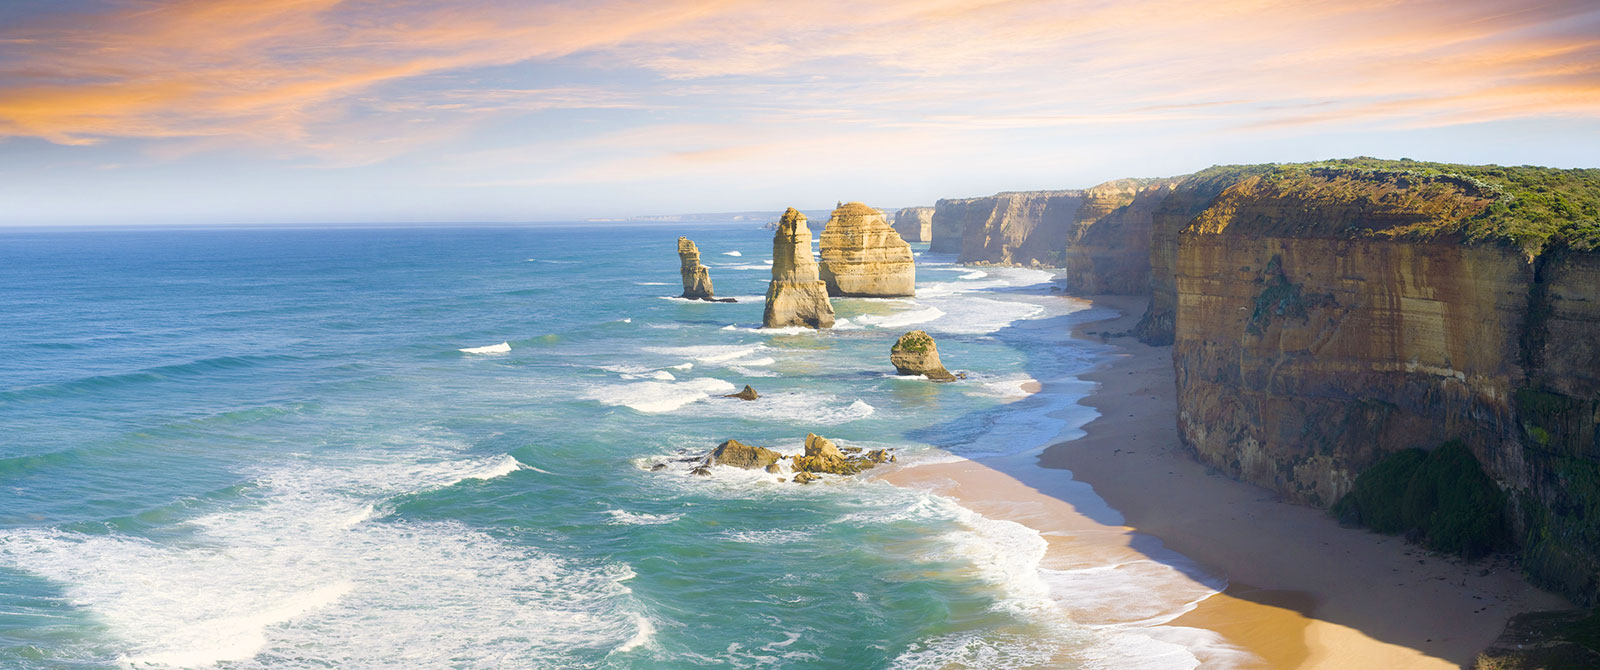 Great Ocean Road Tour - Australia Vacations - Twelve Apostles Great Ocean Road